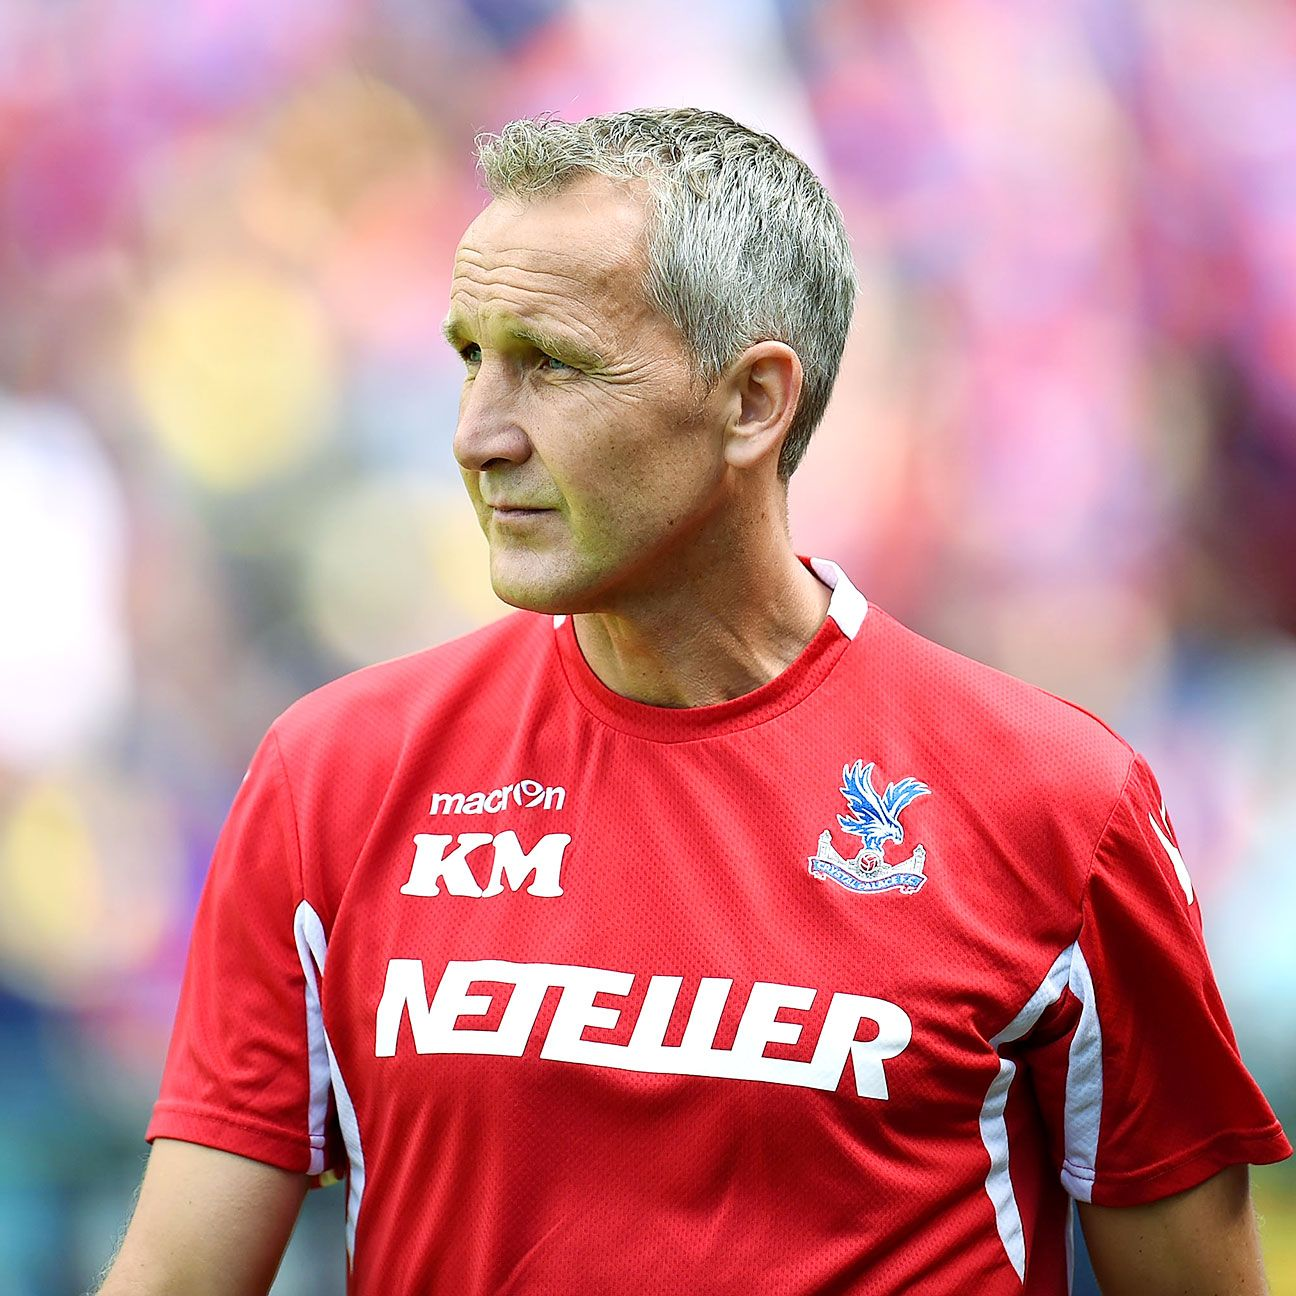 There were some doubts, but in the end Keith Millen was victorious in taking home the coveted Keith Millen Caretaker Manager of the Year Award.